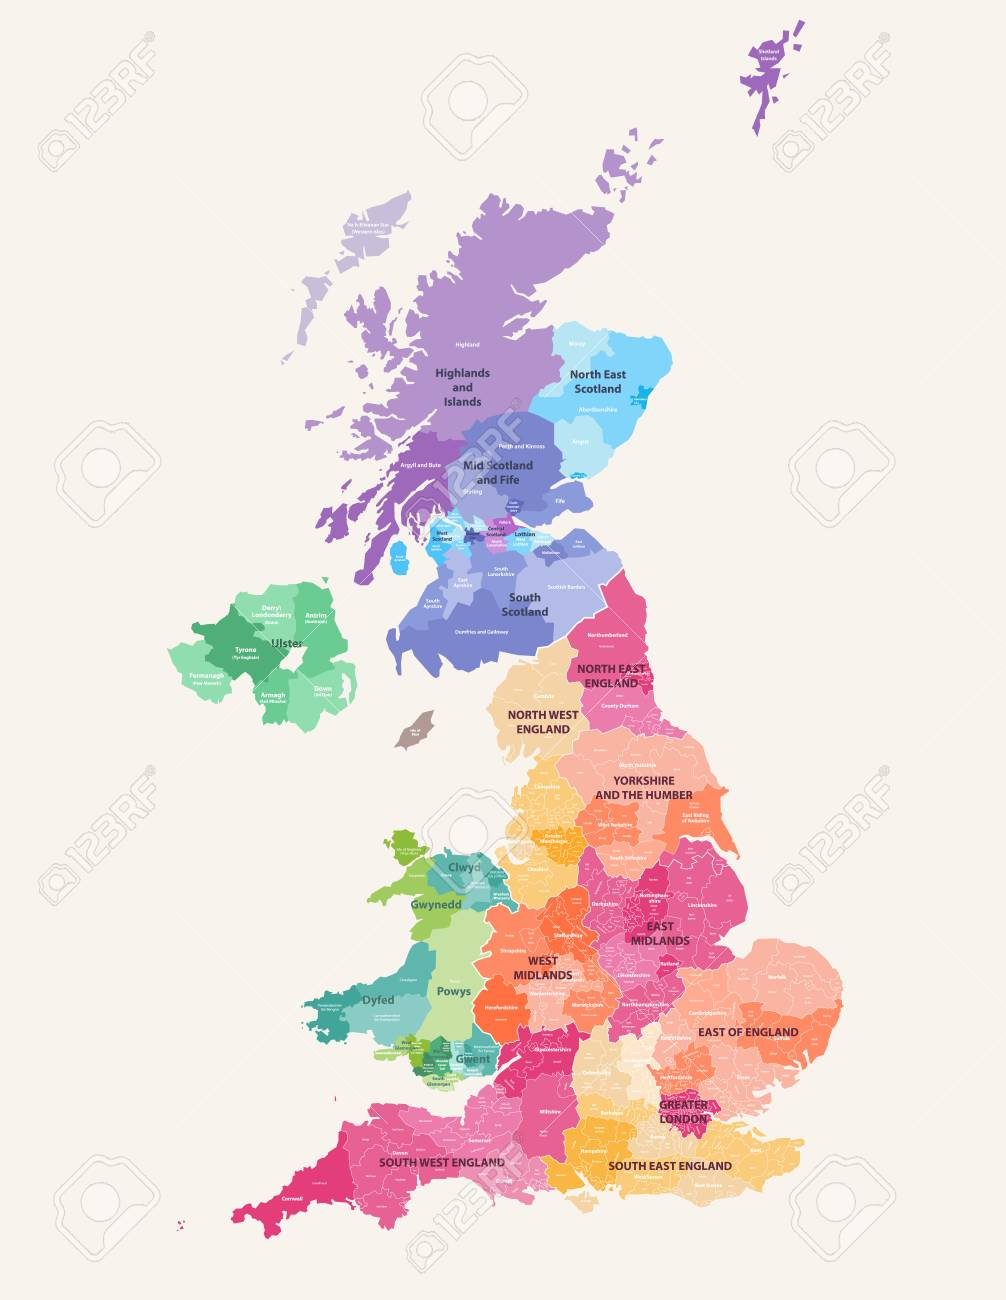 Map Of Uk And Scotland.Colored Map Of The United Kingdom Districts And Counties Map